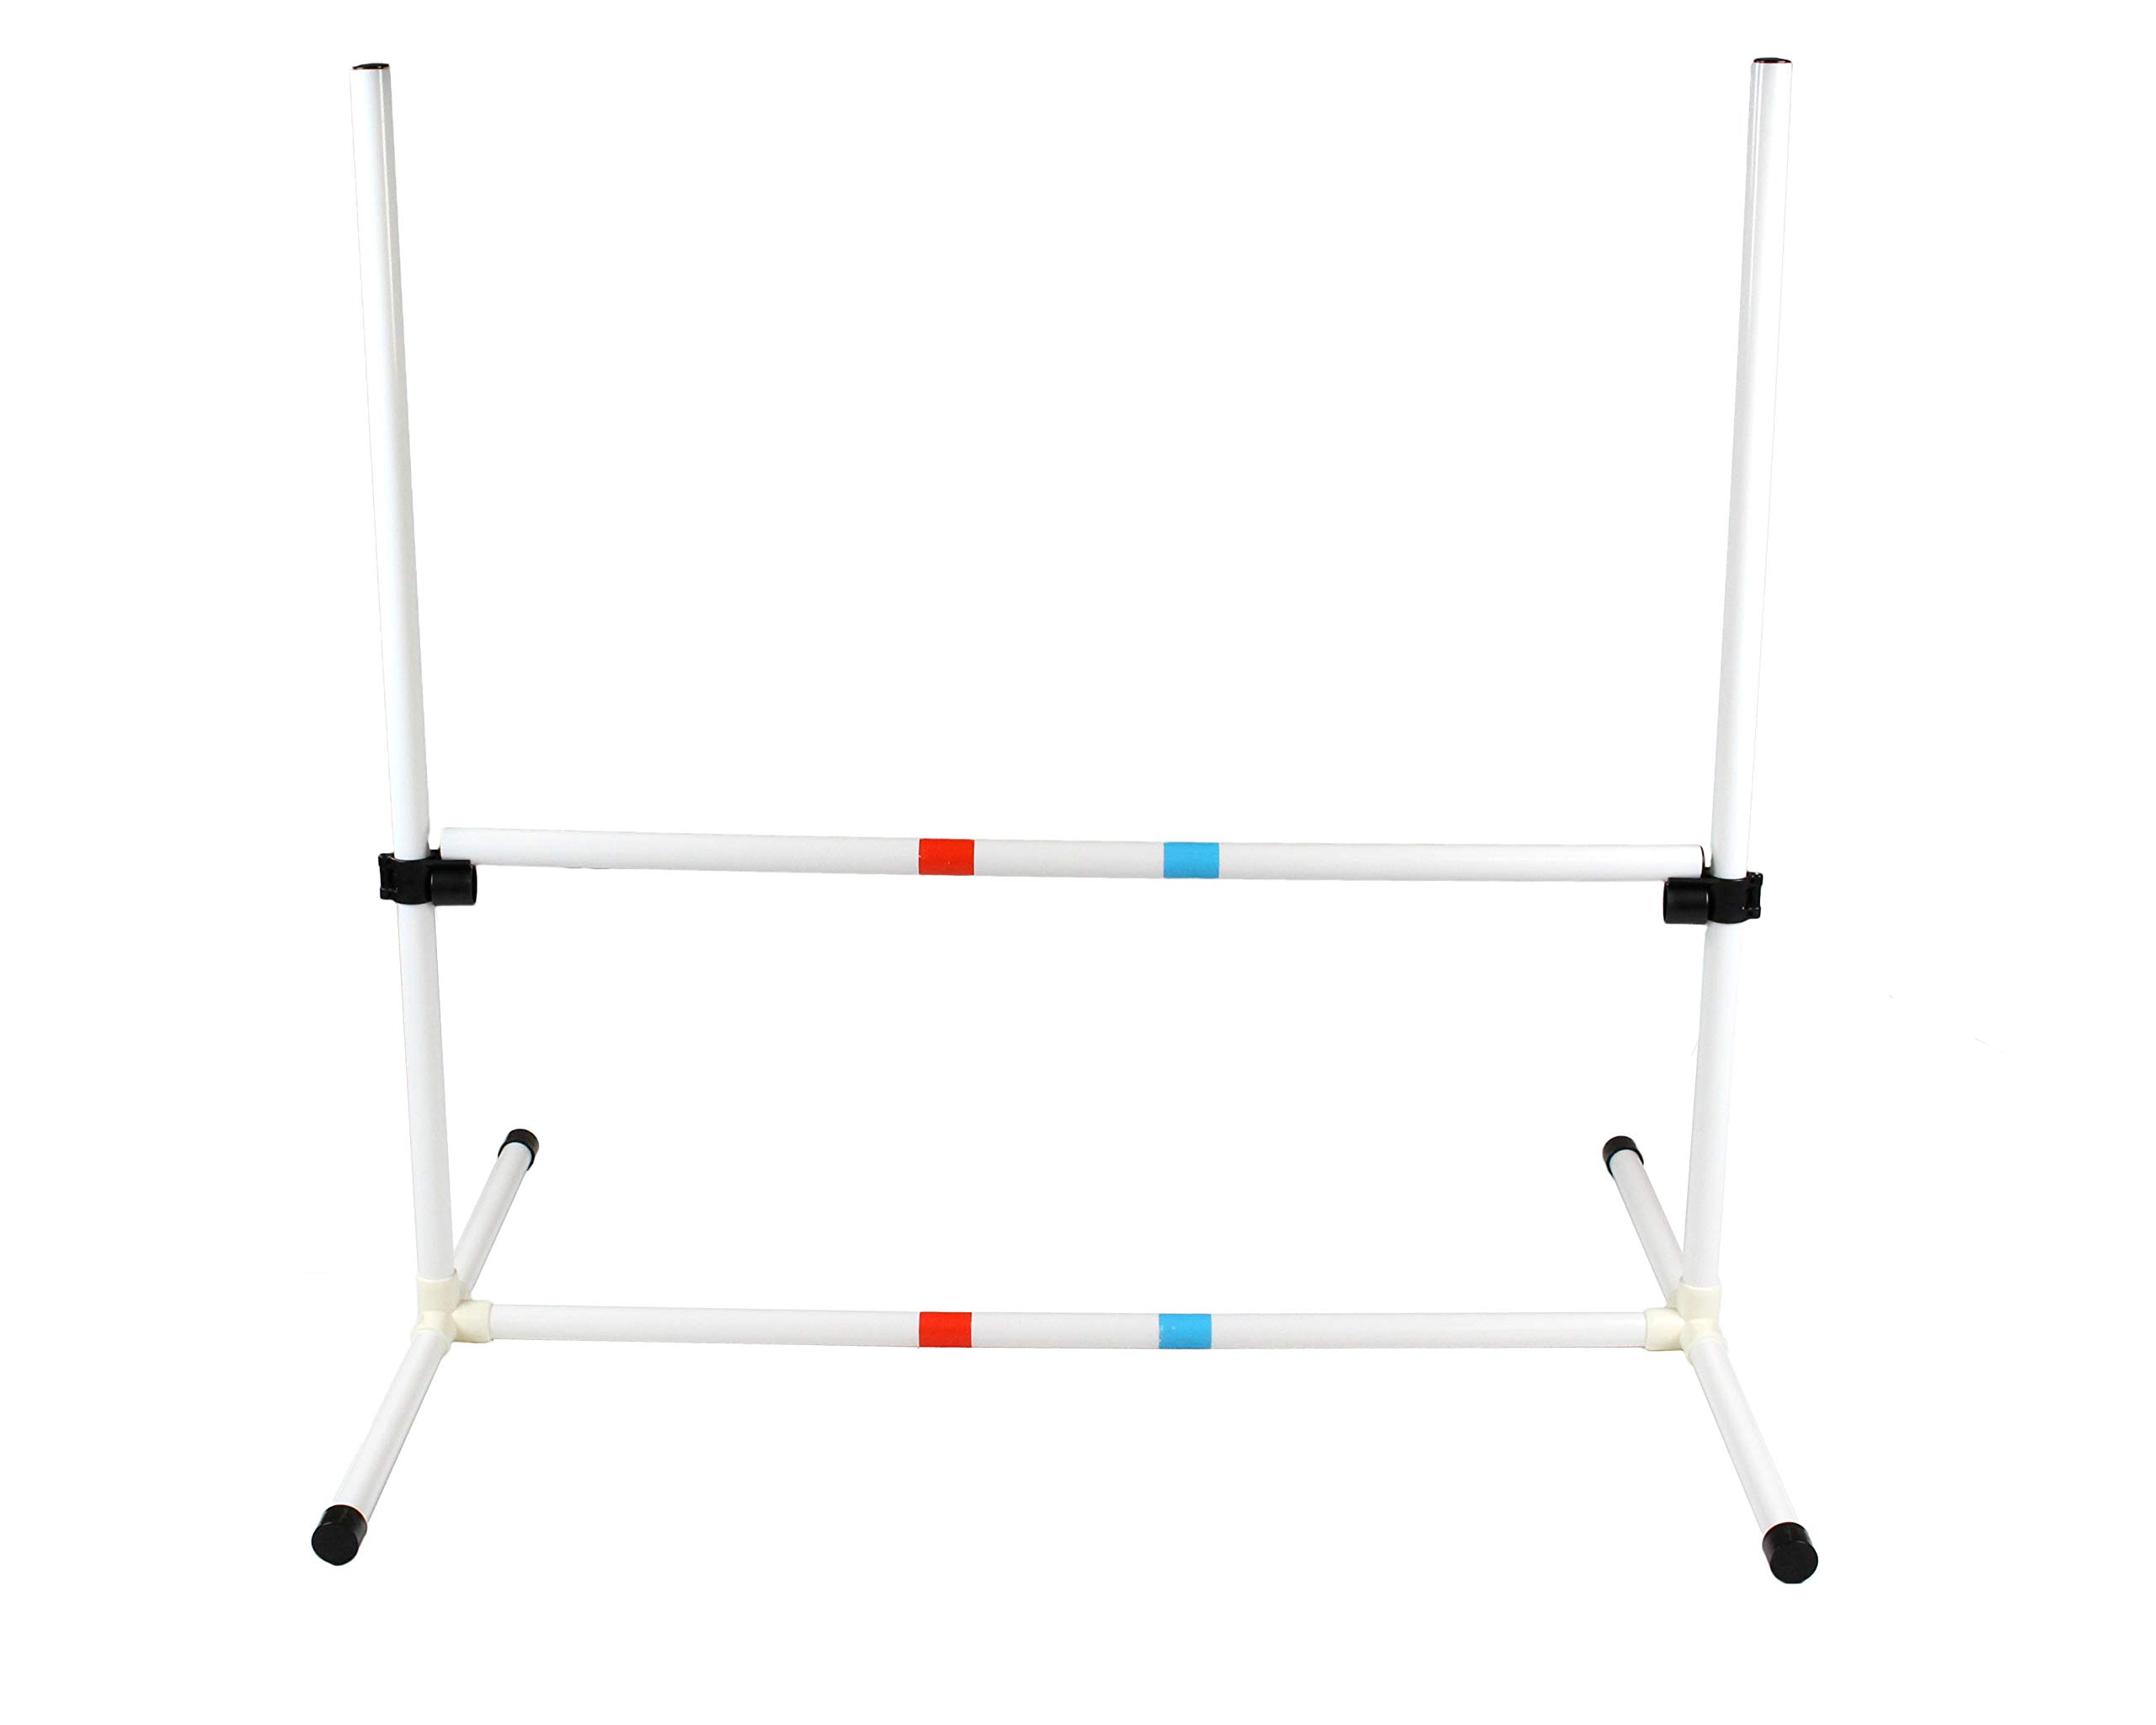 Dog Agility Bar Jump - Training Equipment - Obstacle Course Hurdles for Jumping Practice, Exercise Drills - Adjustable Plastic Frame and Poles with Carrying Bag by Midlee